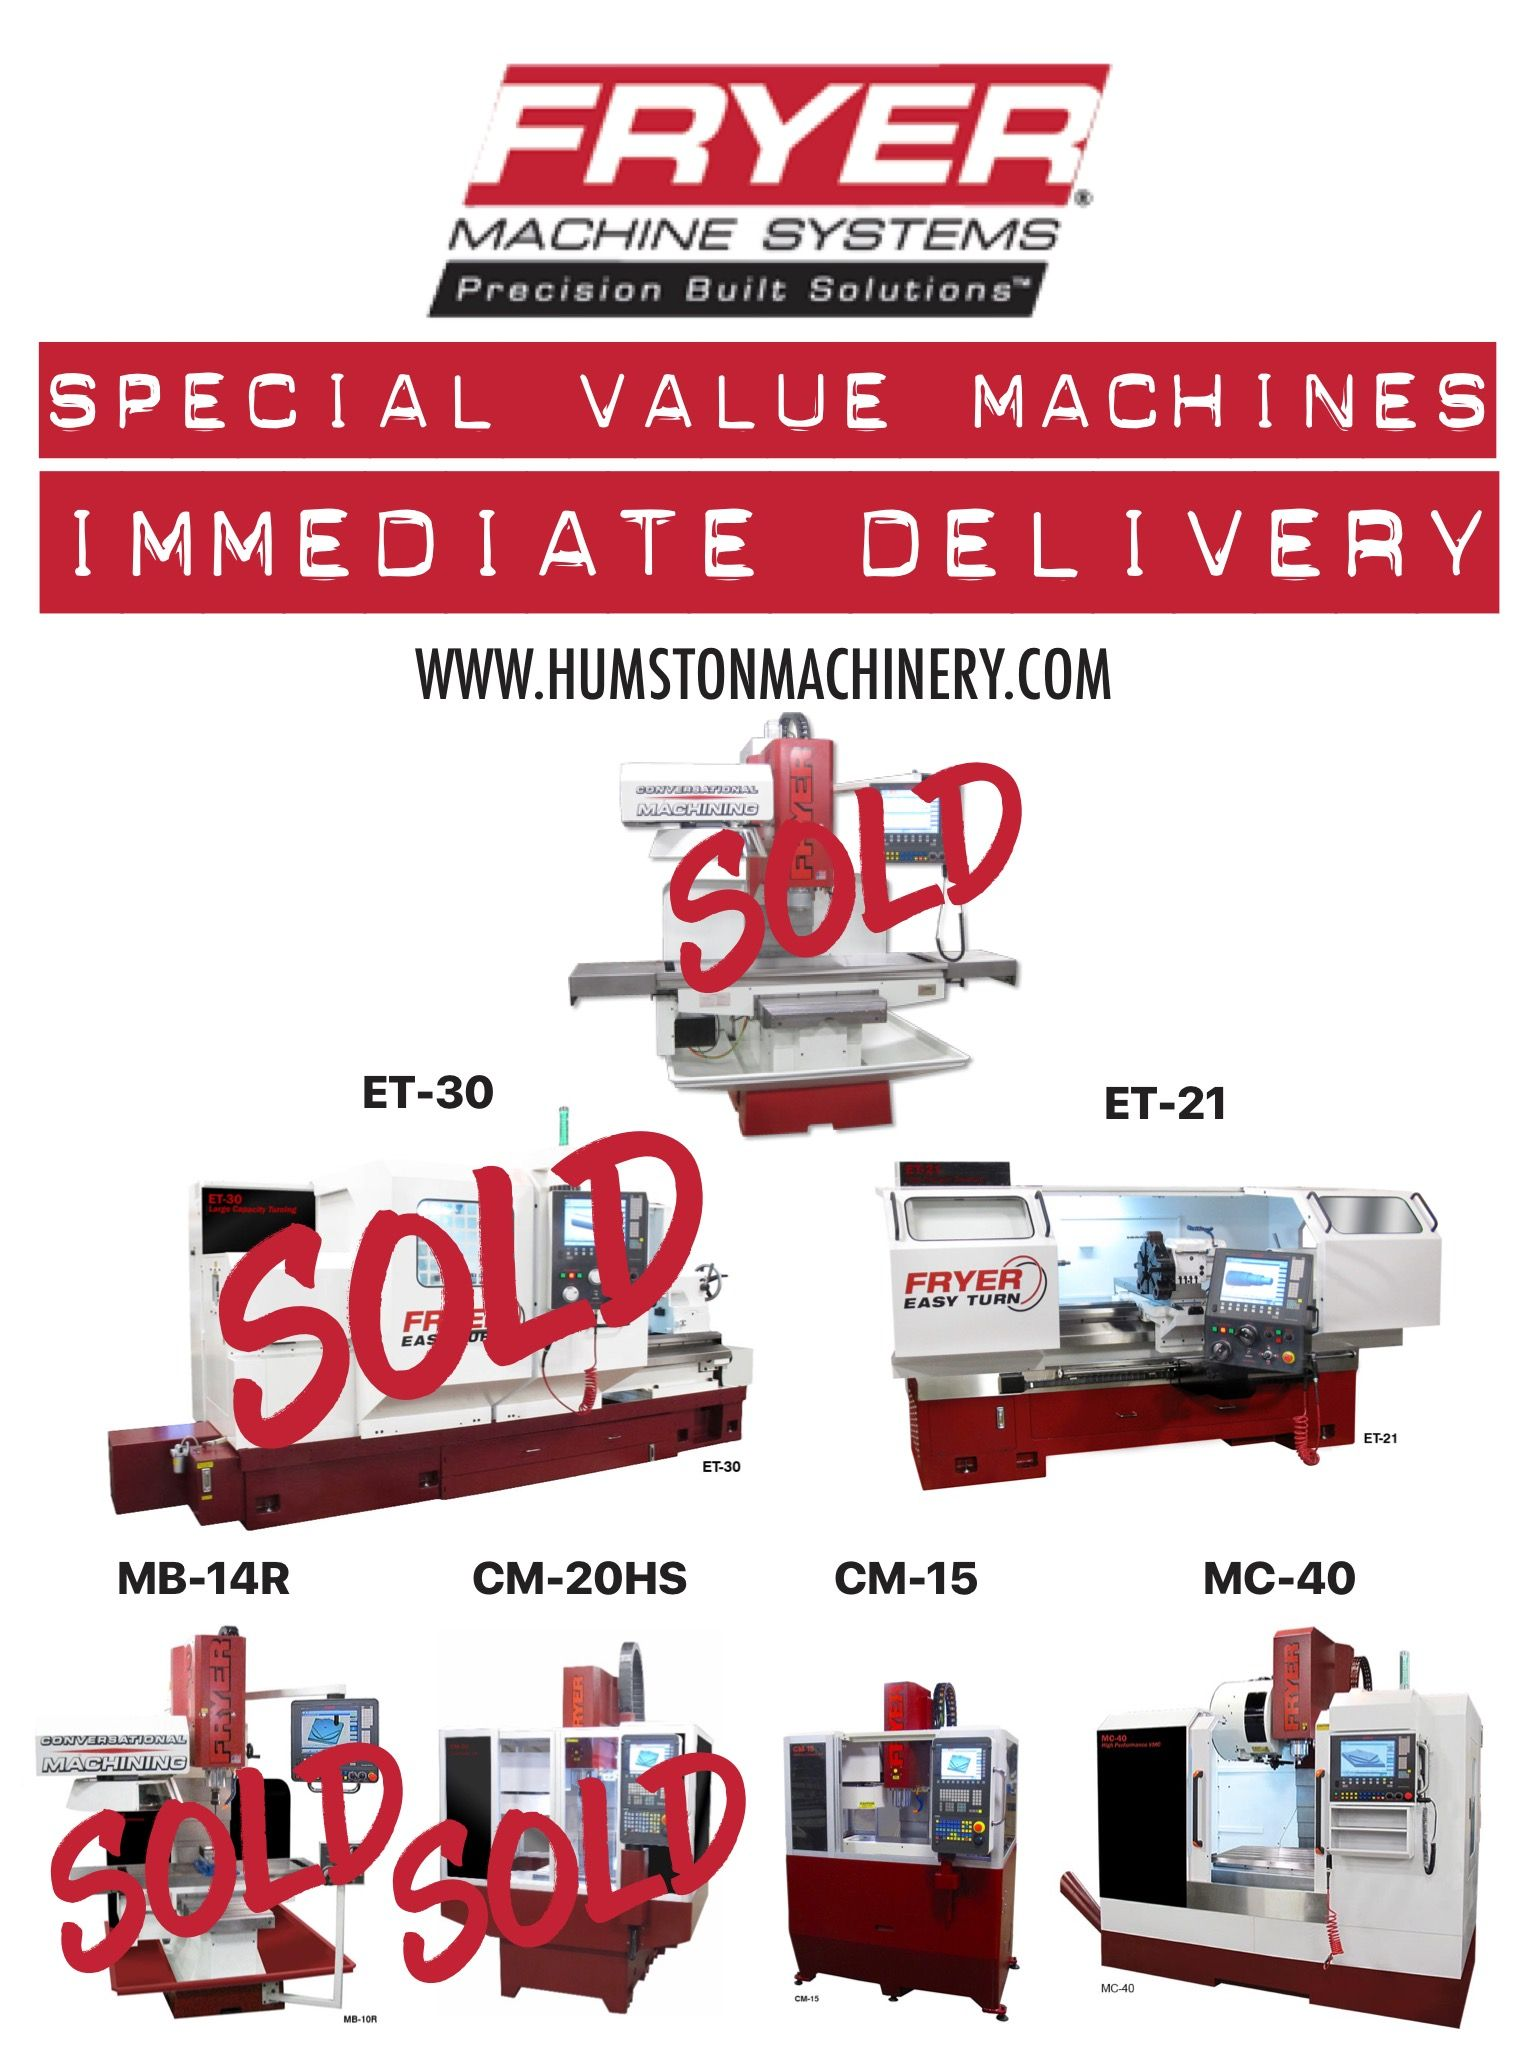 Better Hurry Only A Few Machines Left For Immediate Delivery With Special Value Year End Pricing Contact Humston Machinery For Conveyor Machinery Cnc Machine